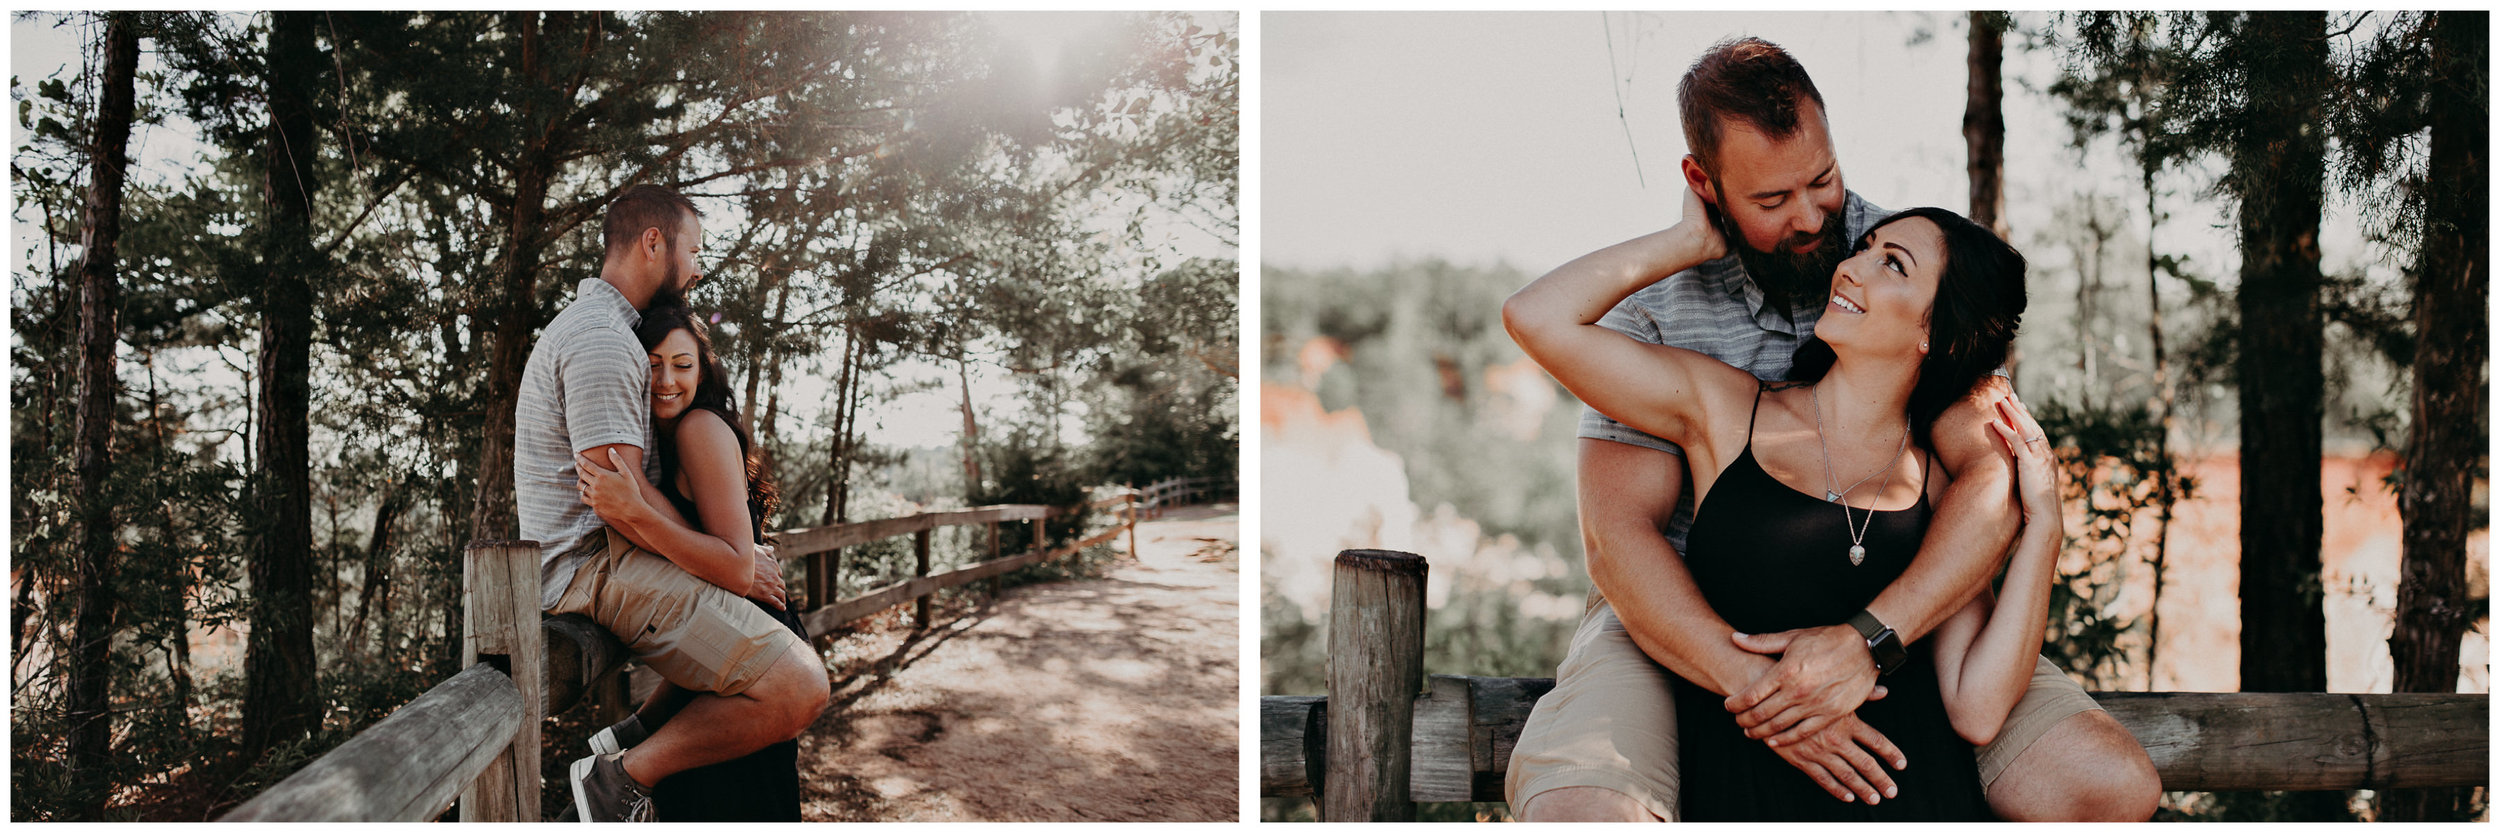 3- providence canyon georgia -engagement-session-atlanta-wedding-photographer, Aline Marin Photography.jpg